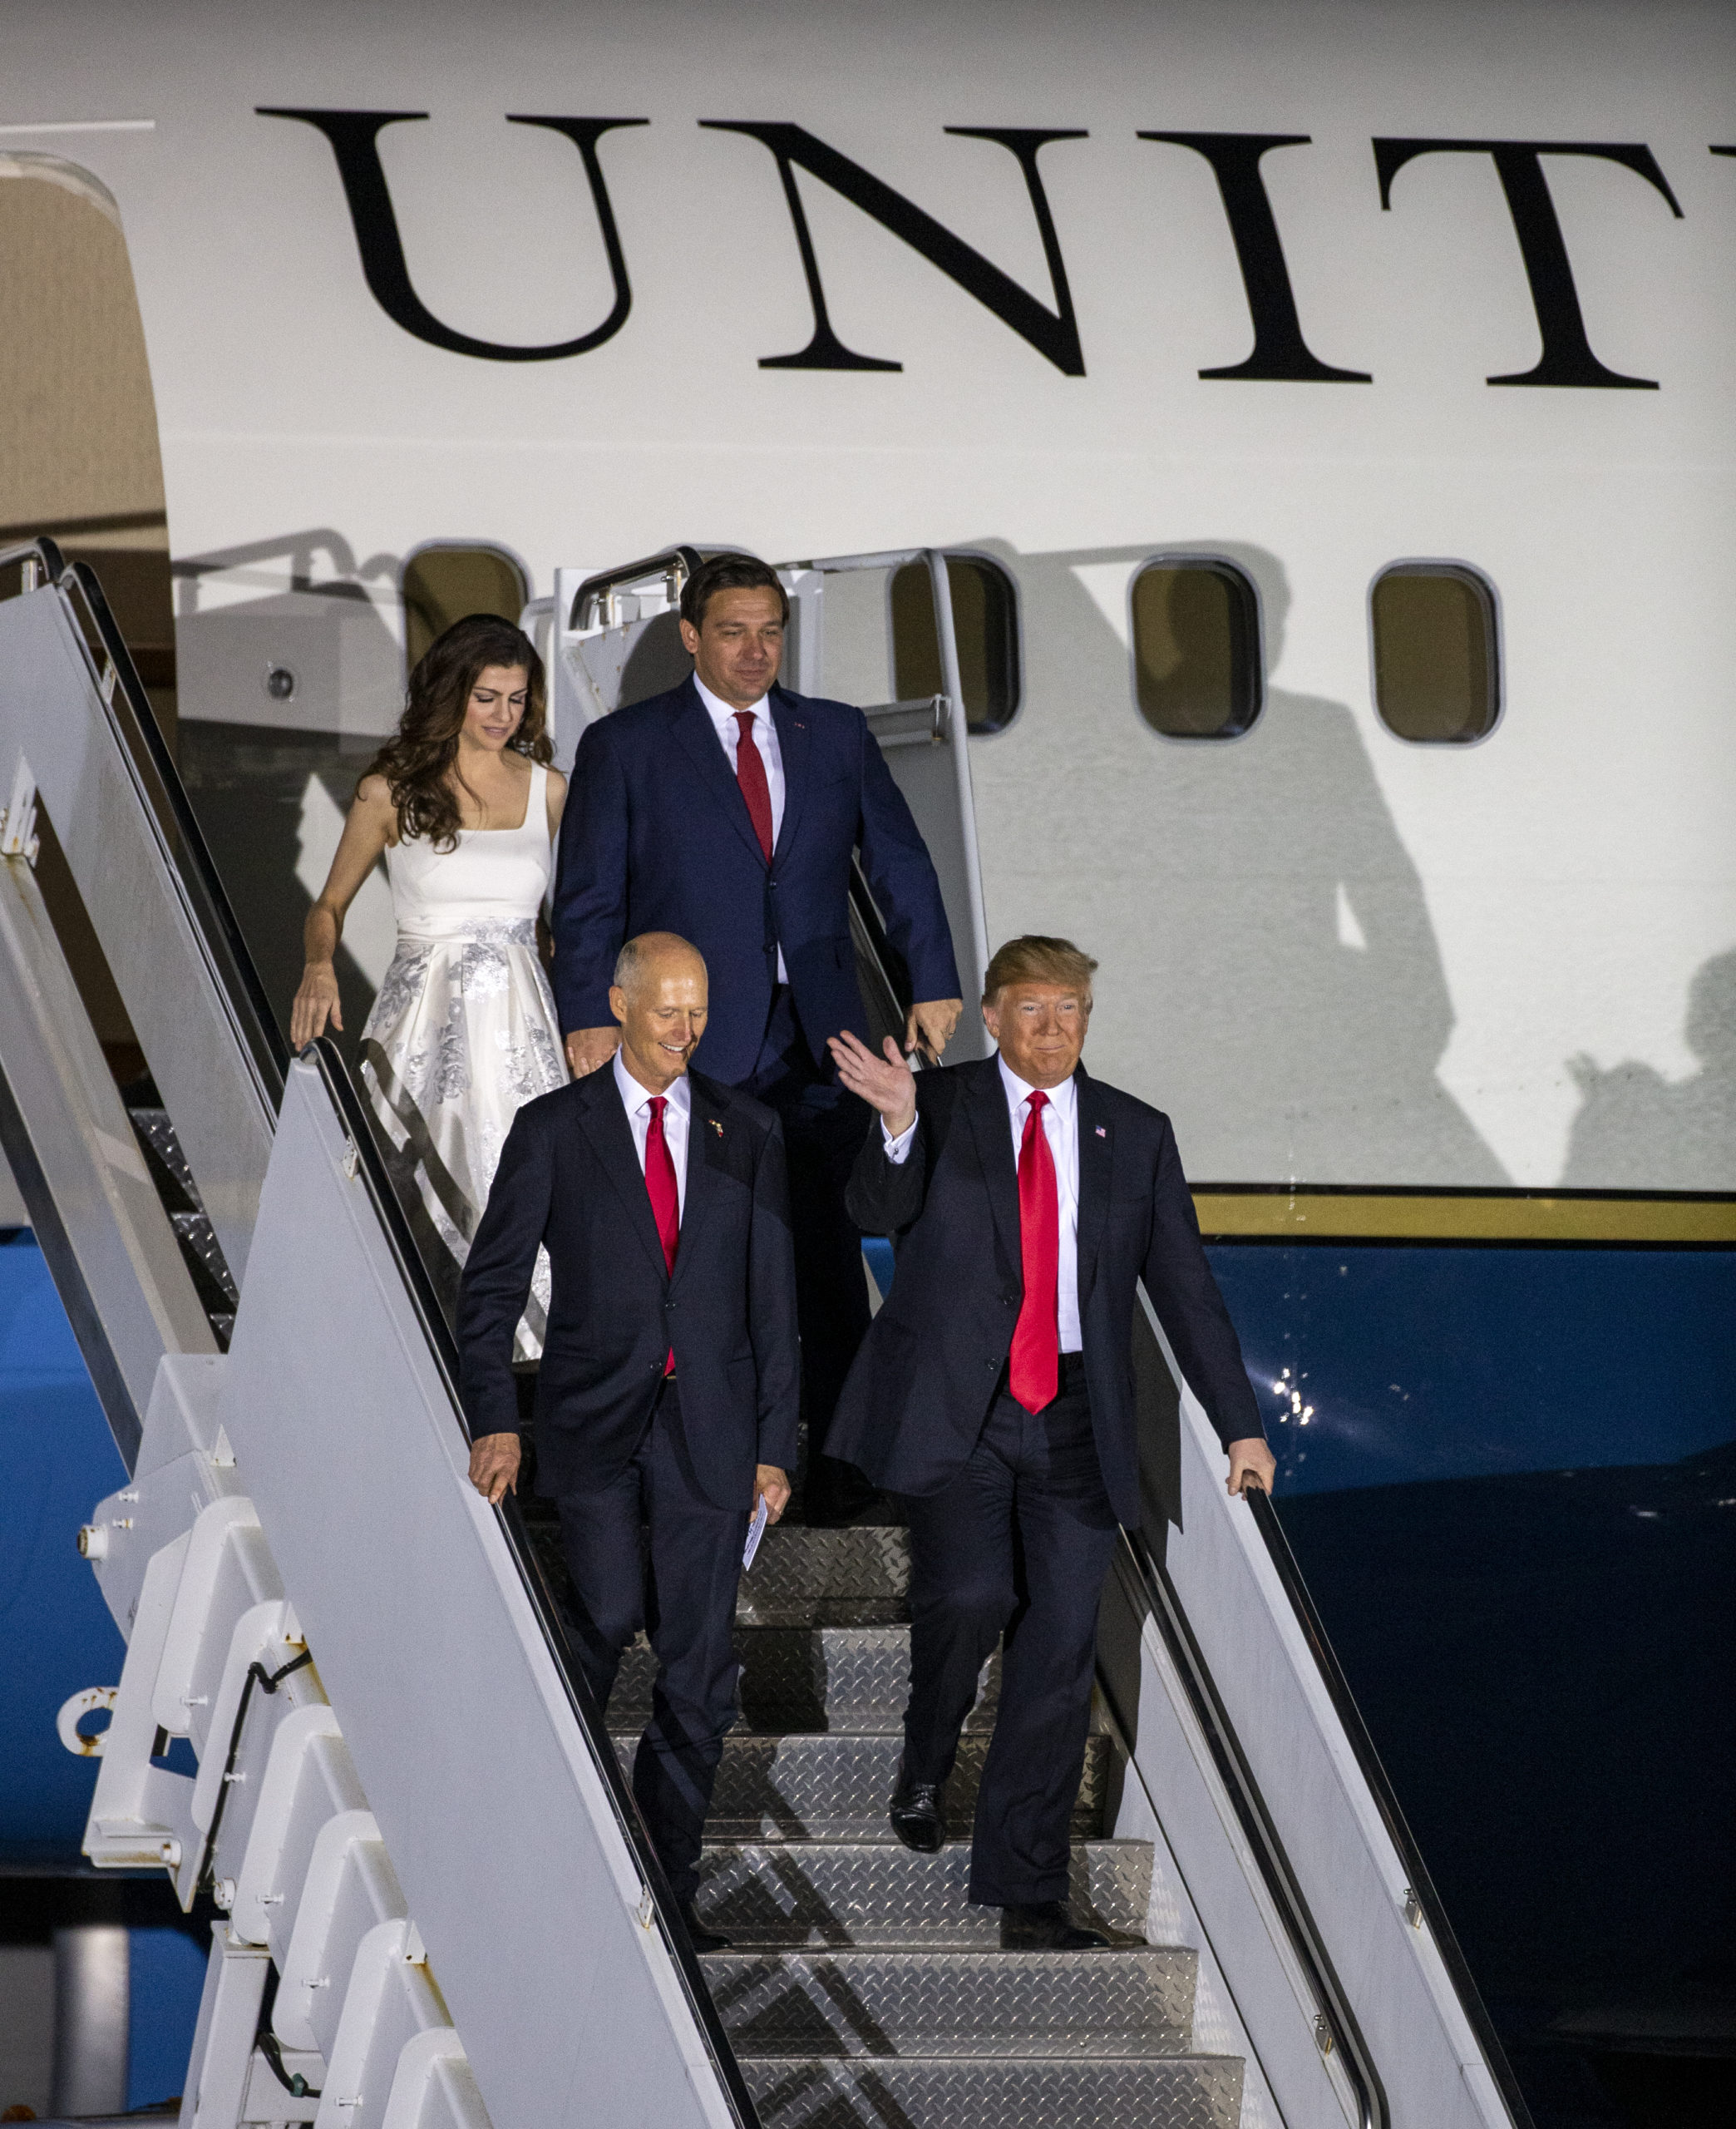 President Trump Holds Campaign Rally In Pensacola, Florida